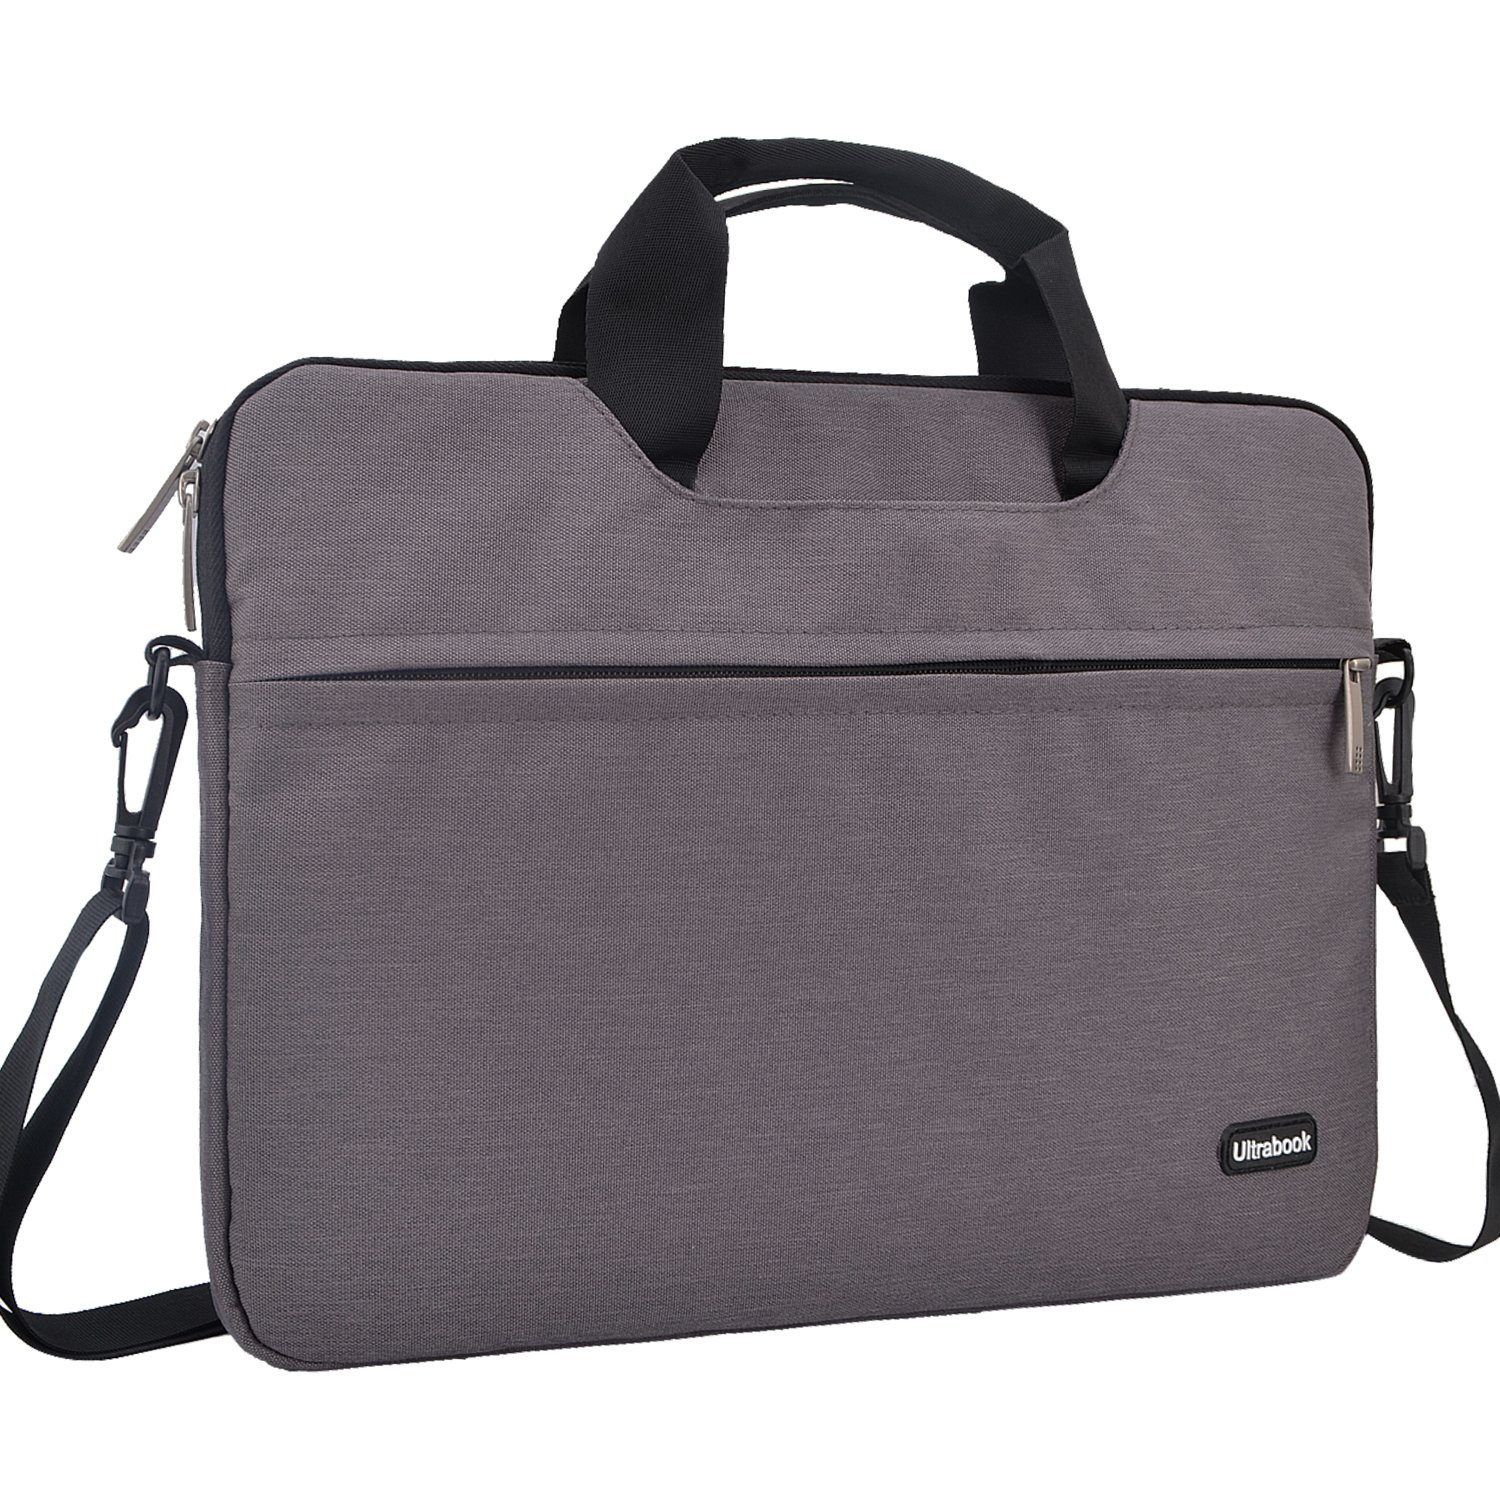 13.3 inch Laptop Shoulder Bag, FOPATI Laptop Sleeve for 12-13.3 Inch Notebook, Macbook Air 13/iPad Pro/Surface Book/Acer ASUS Dell 13'' Chromebook Computer Carrying Case Protective Bag Messenger